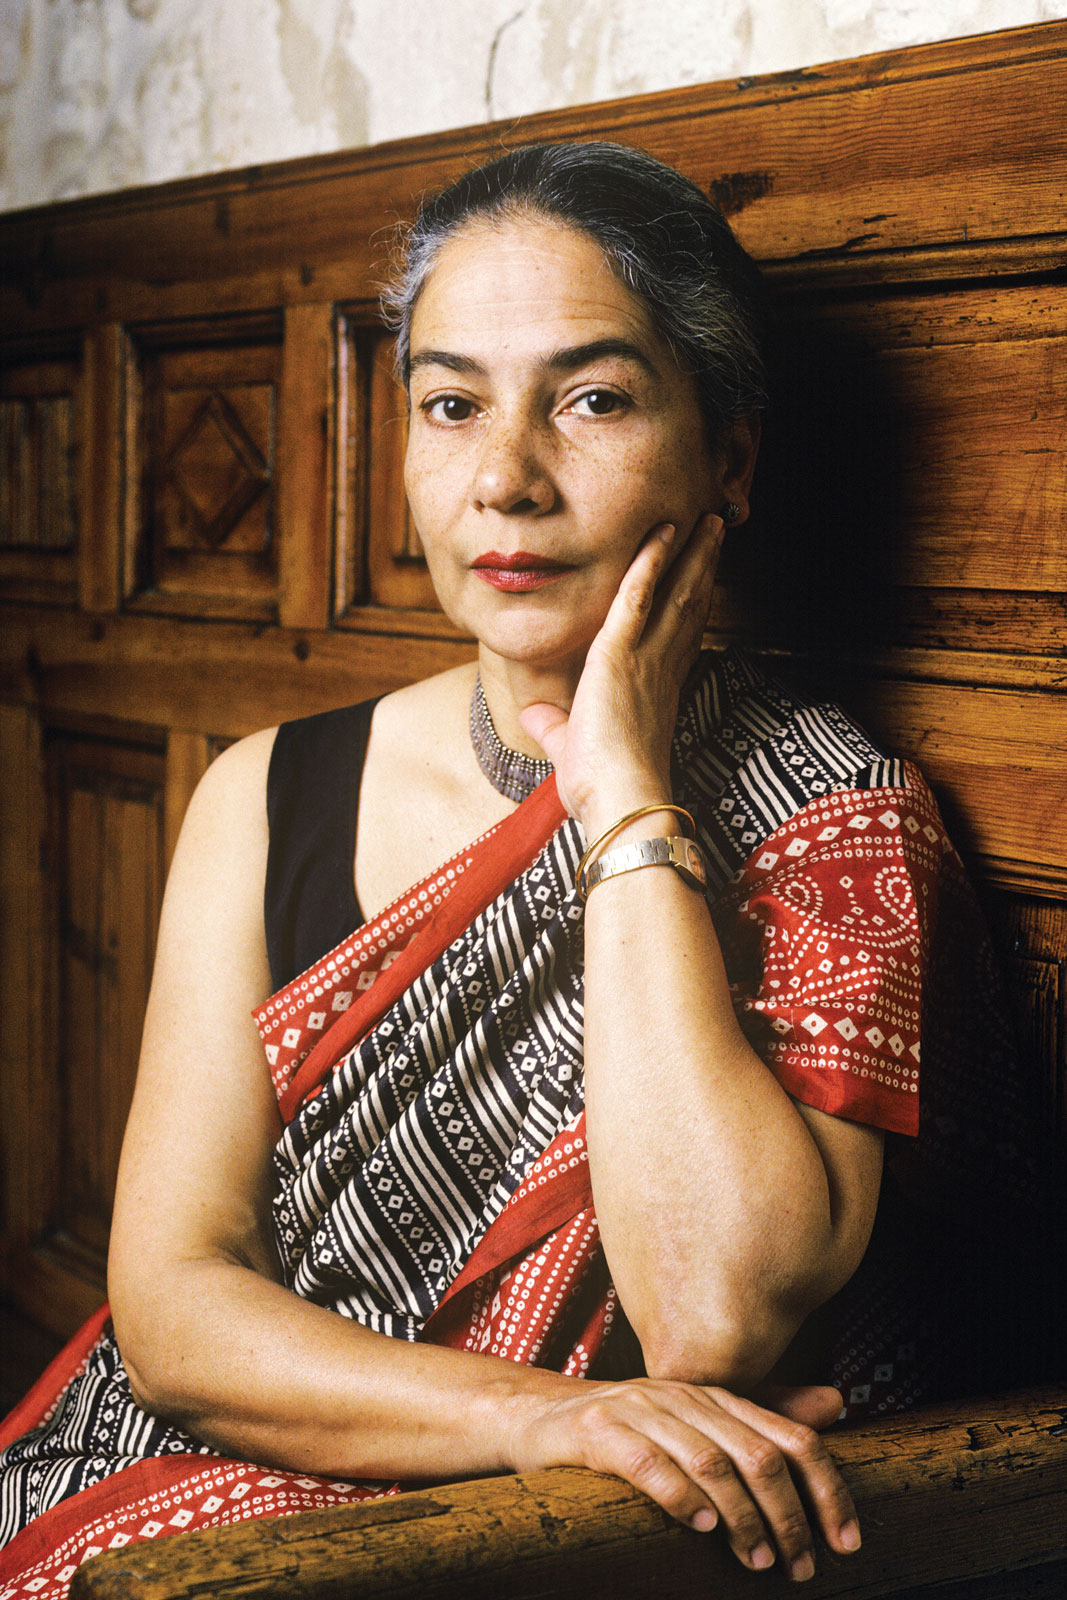 characters in villlage by the sea by anita desai